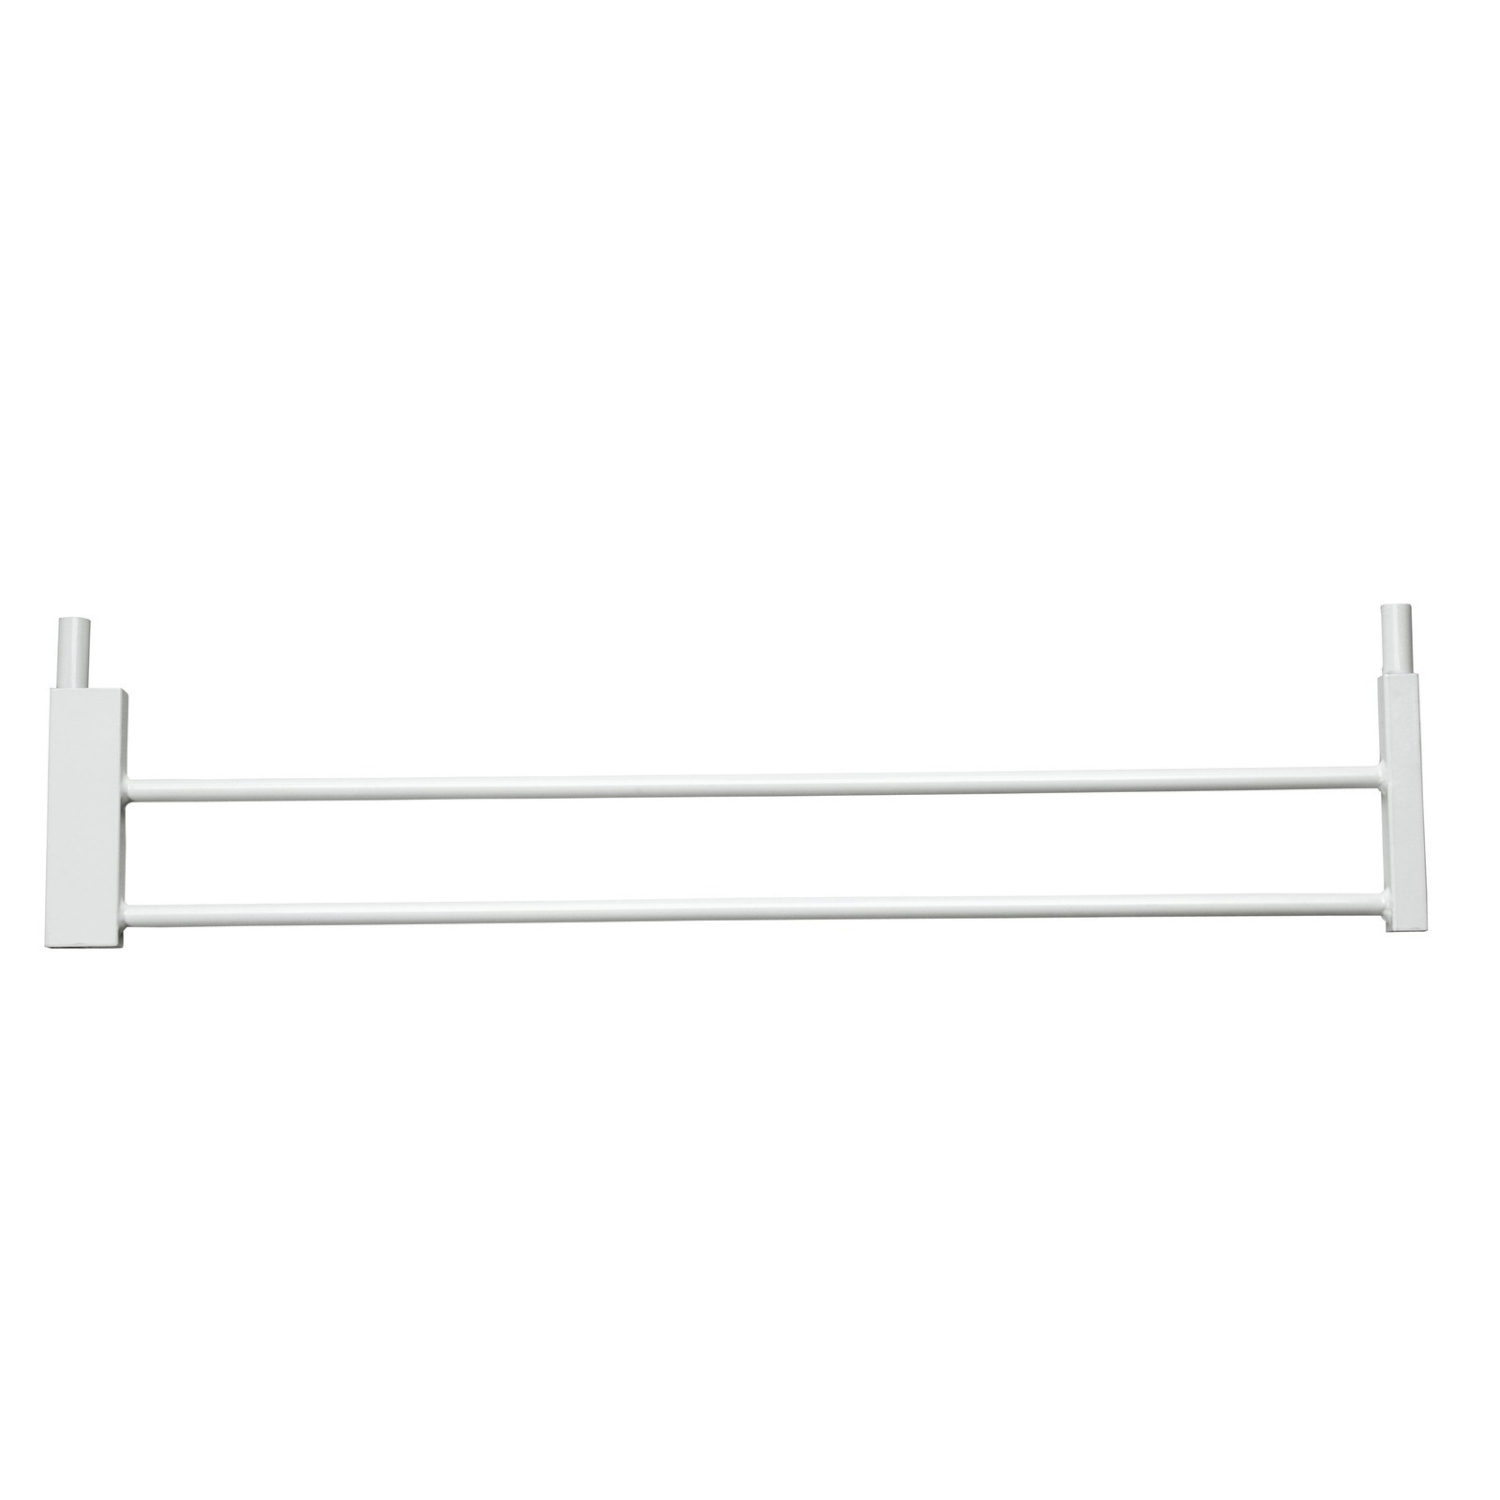 Extensión para Barrera de Seguridad Nightlight - 144 mm